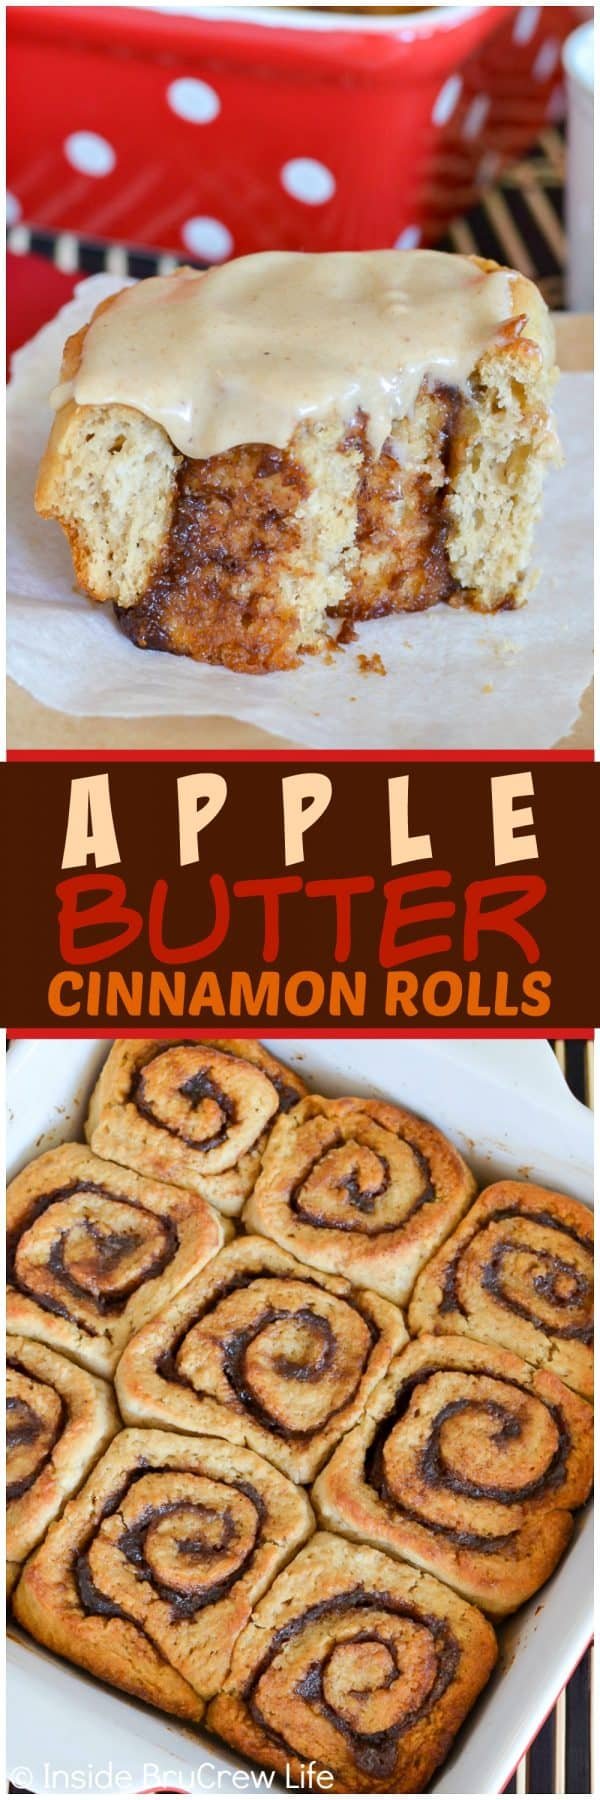 Apple Butter Cinnamon Rolls - three times the apple butter love makes these soft and fluffy rolls a delicious breakfast choice. Easy recipe for fall mornings.